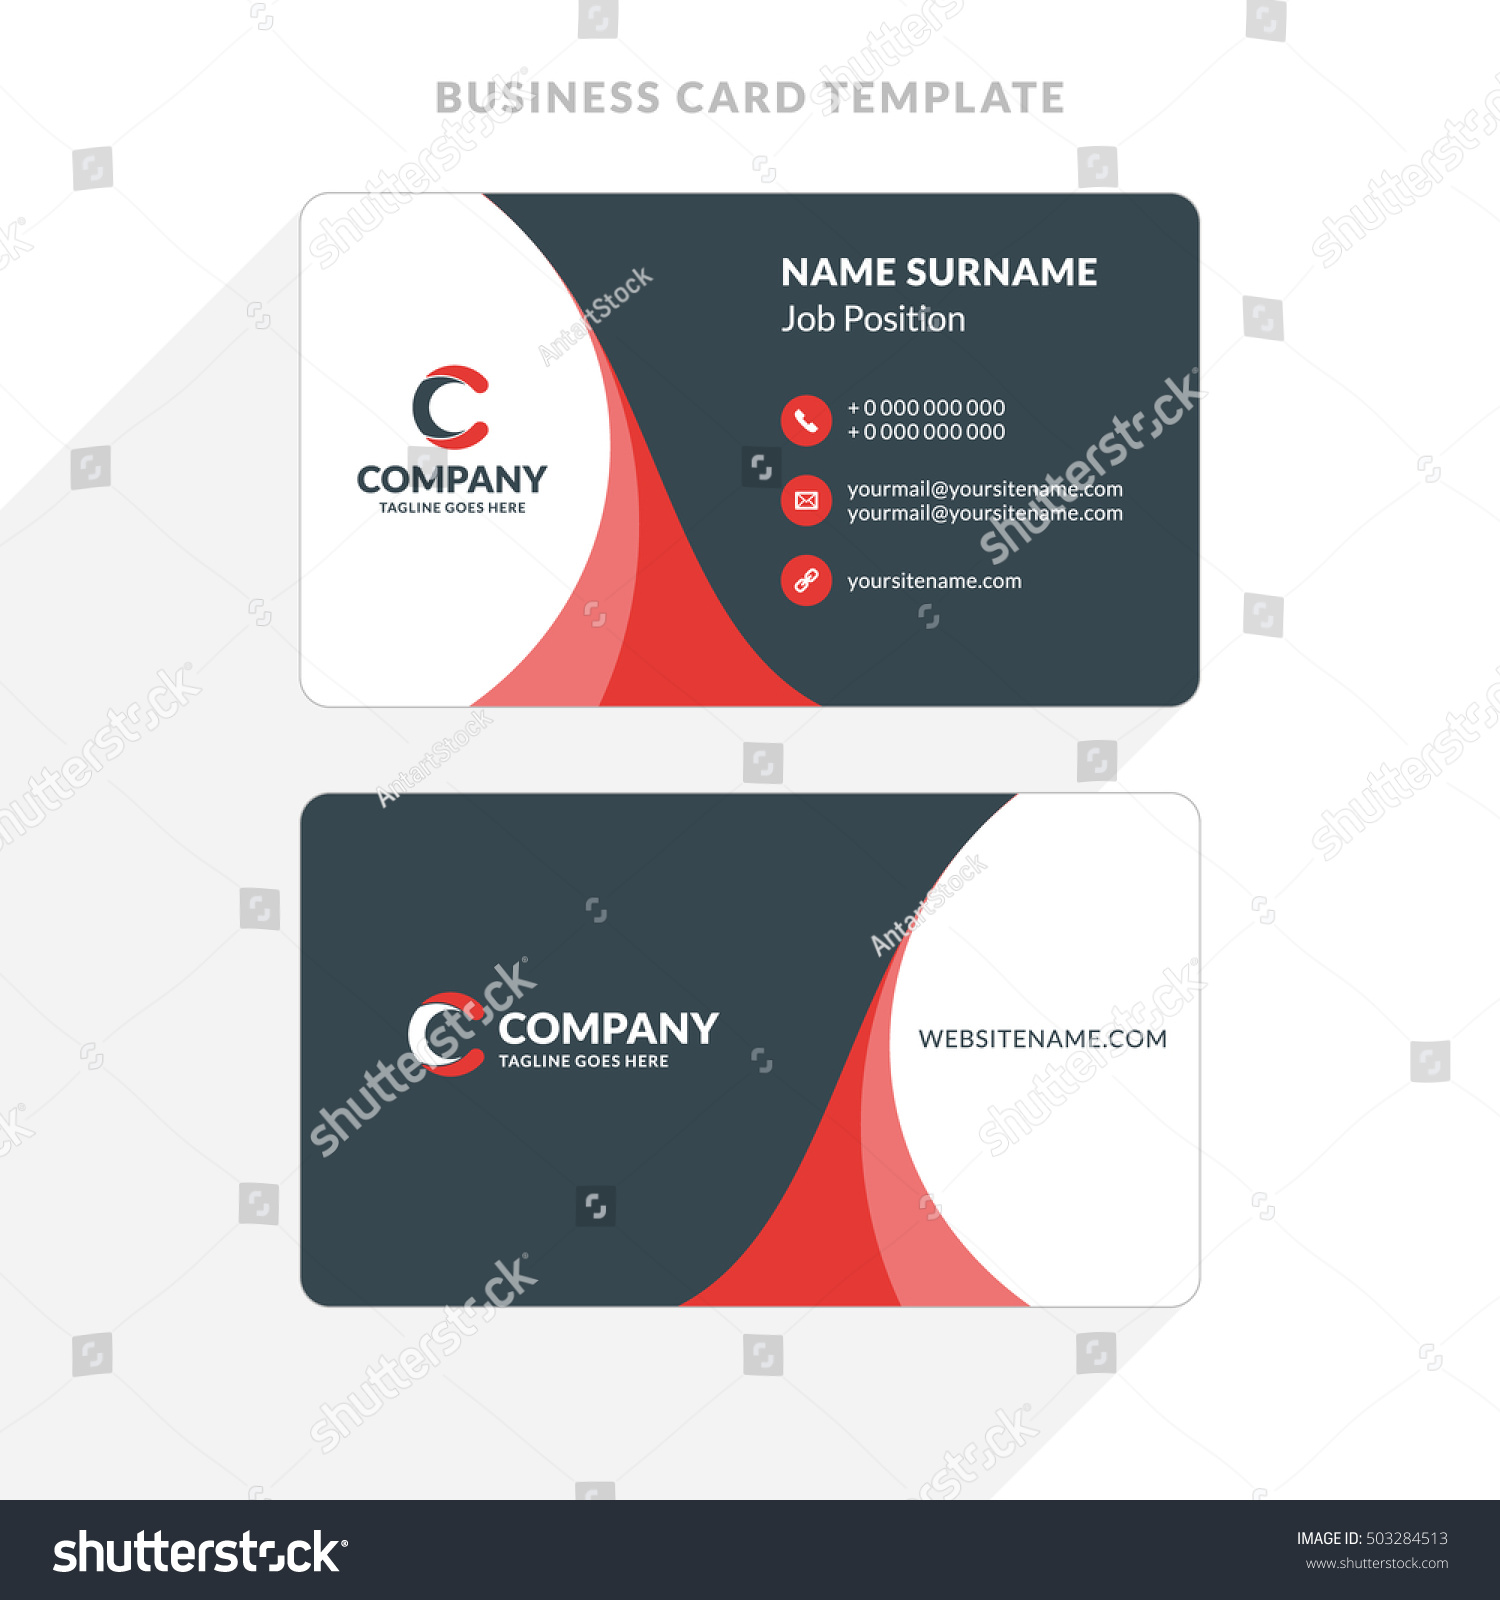 creative clean doublesided business card template のベクター画像